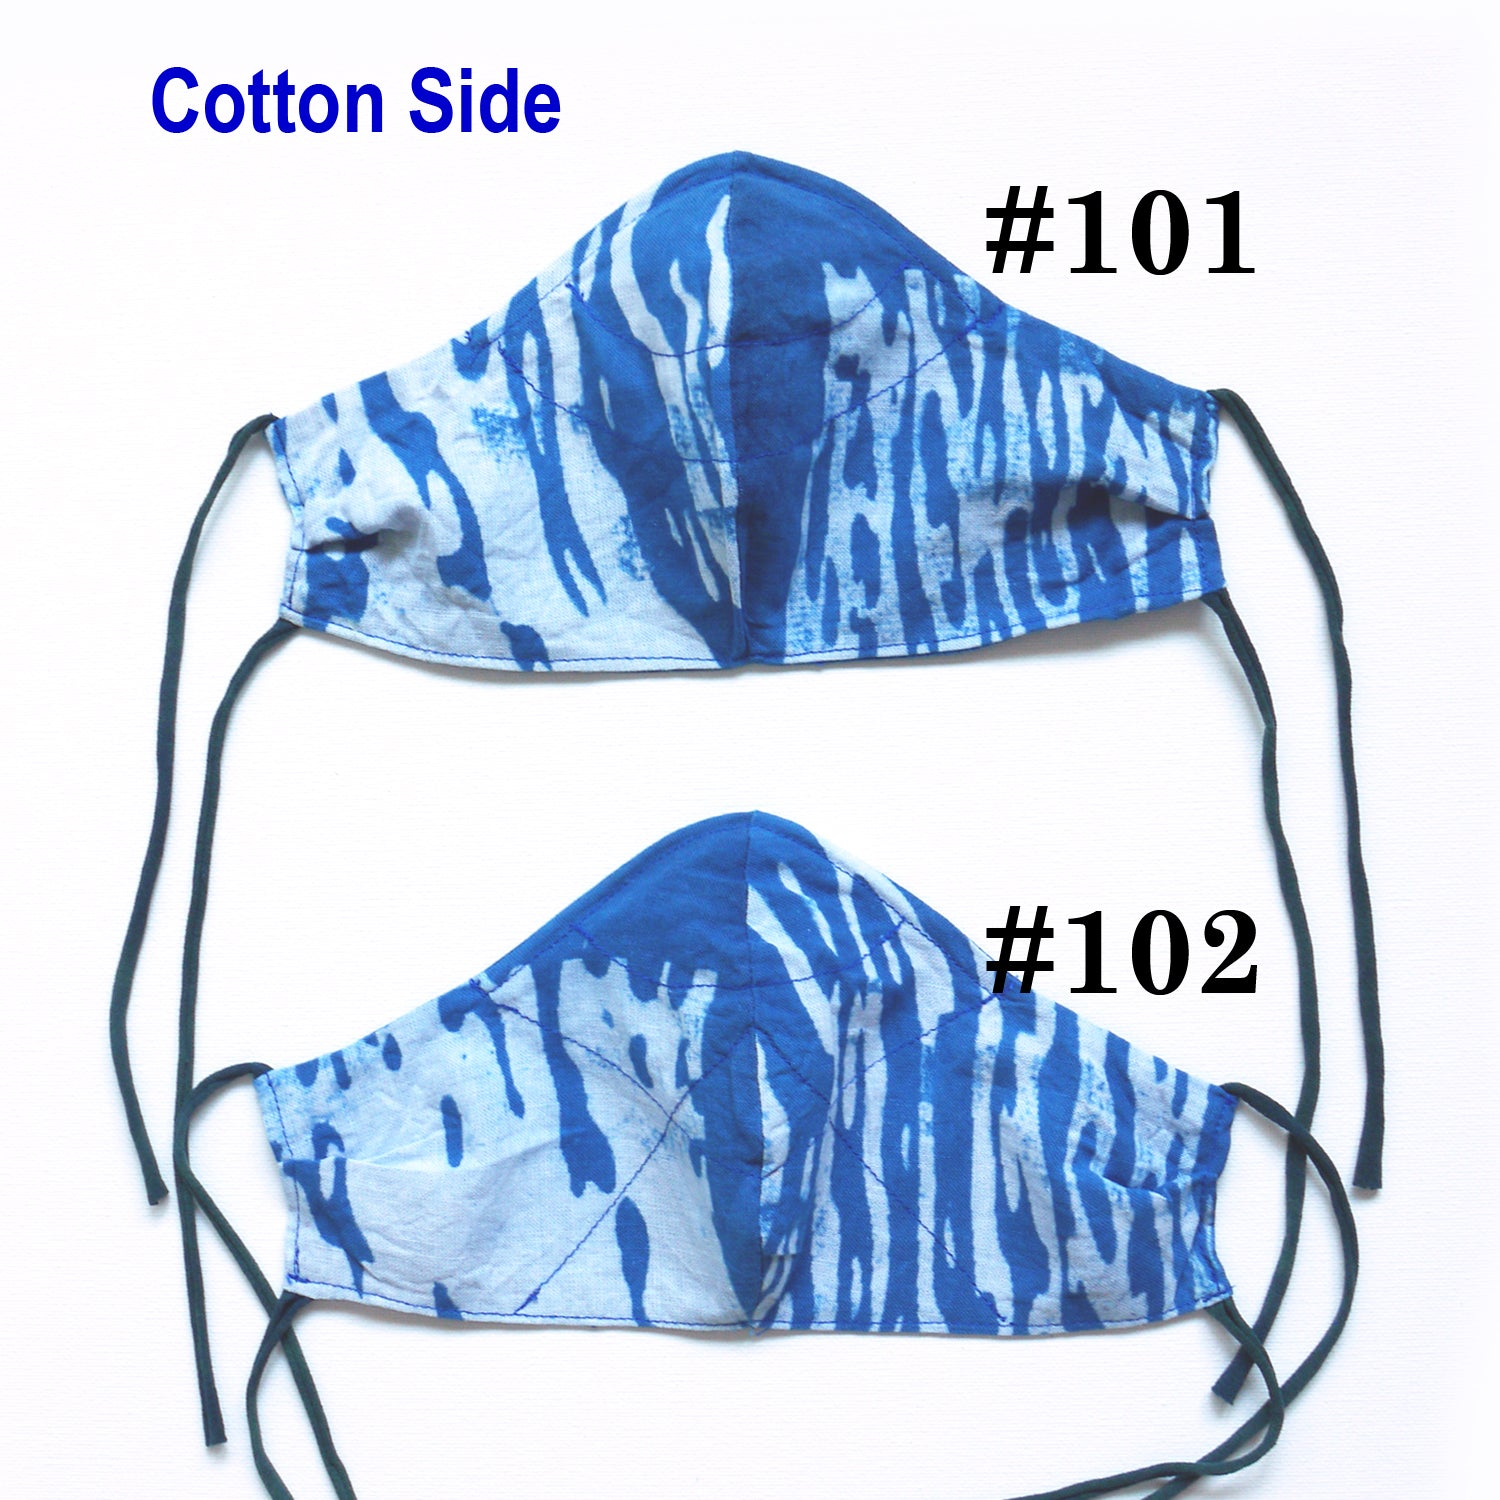 Face Mask, Indigo natural dye Silk/cotton mask with adjustable straps, reversible, nose wire for Sensitive skin. Handmade in the USA.